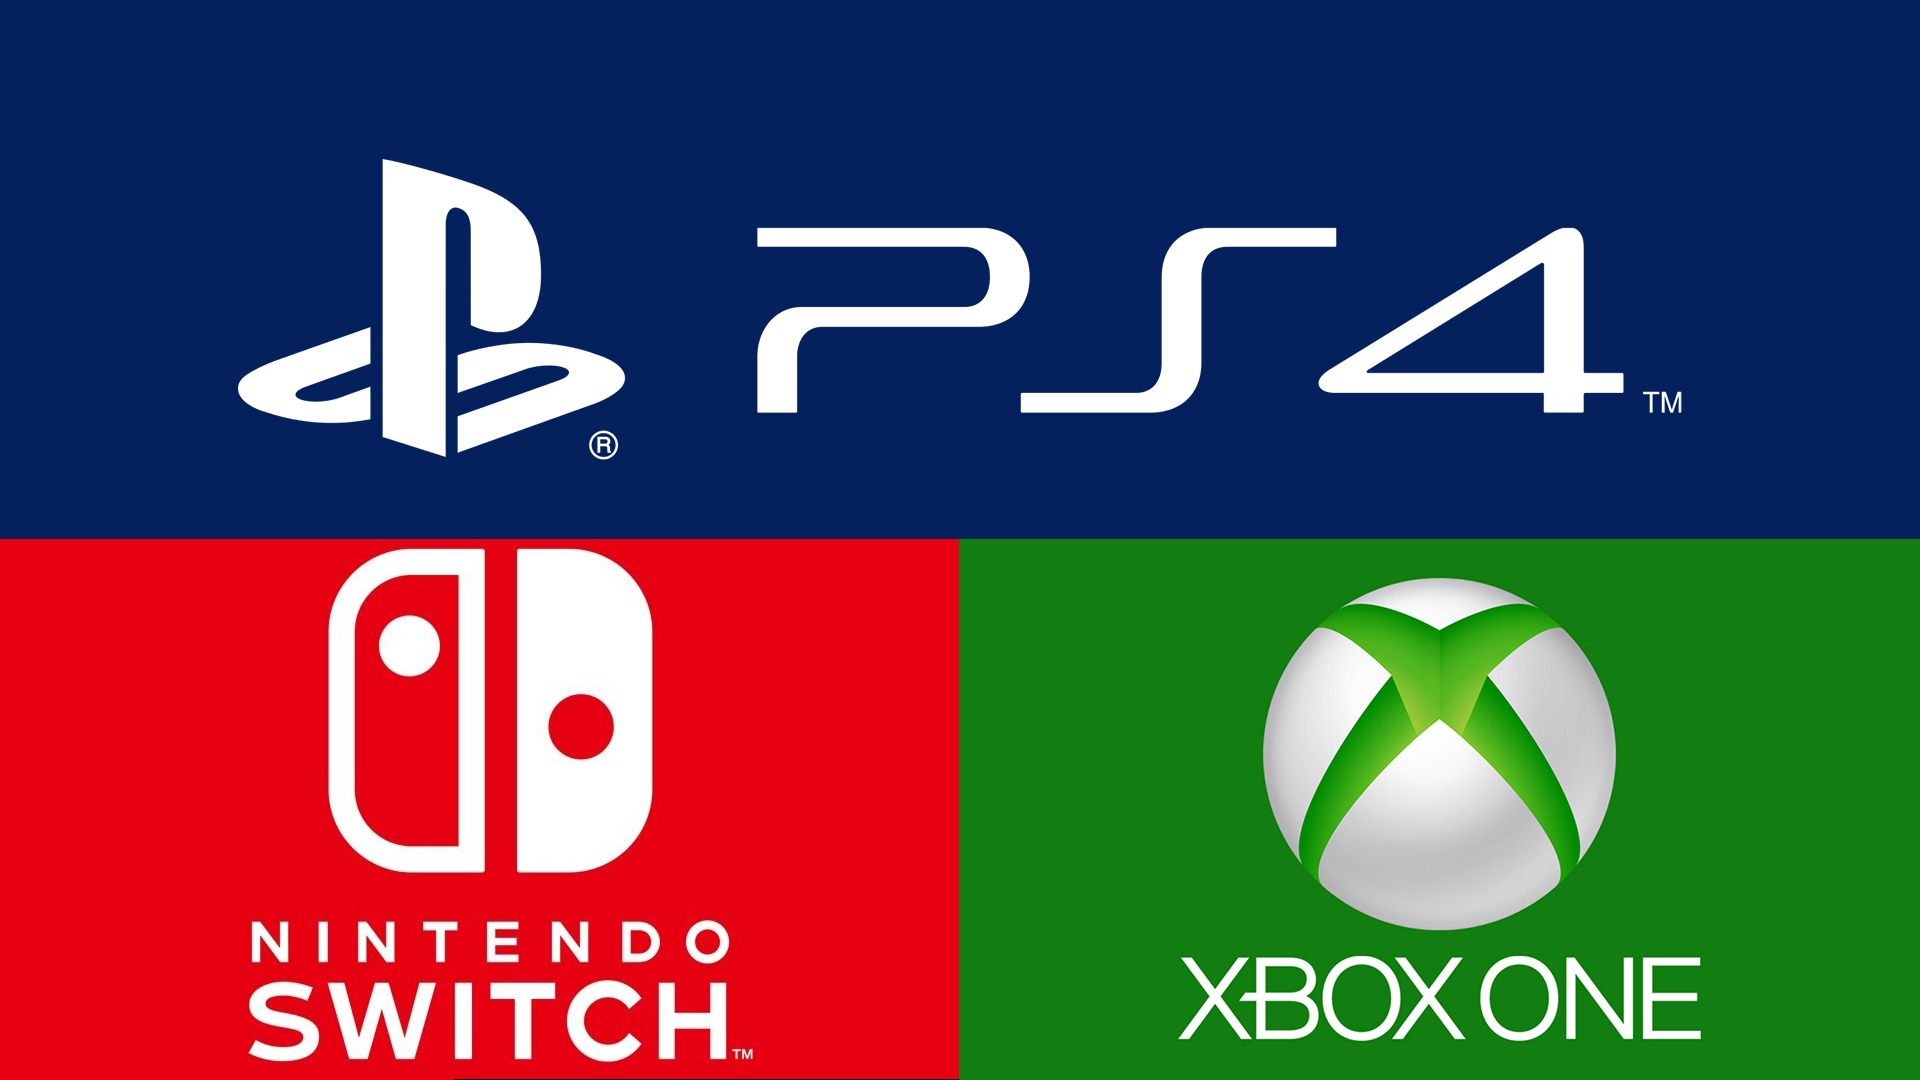 Worldwide Hardware Sales Estimates For The Week Ending August 31, Nintendo Leading The Pack